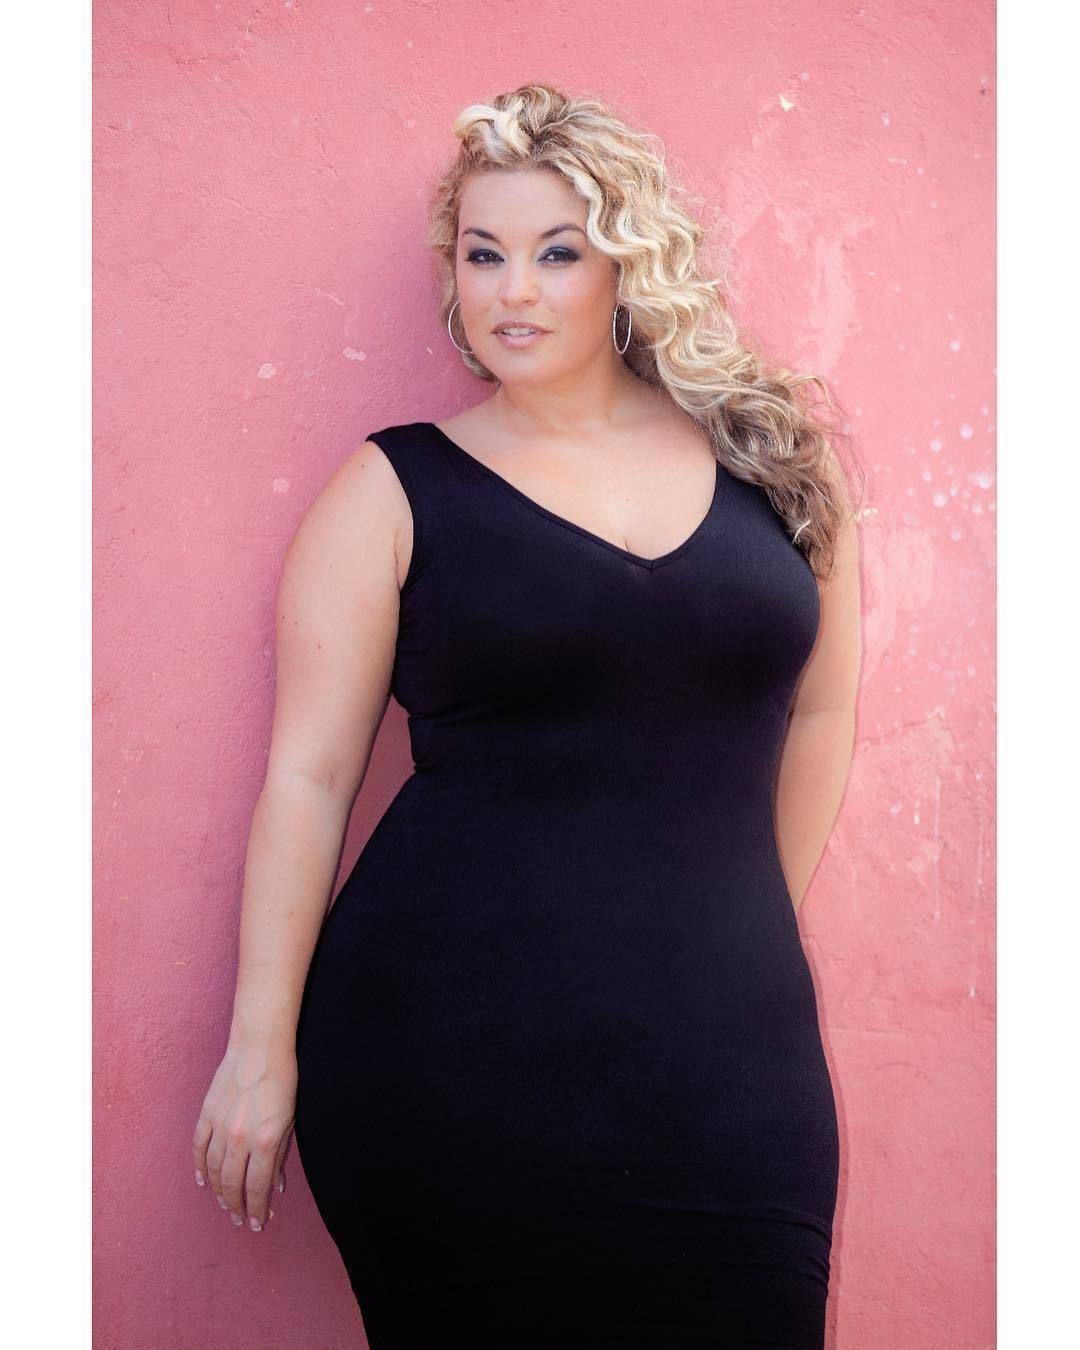 Best plus size dating site and app for plus size singles